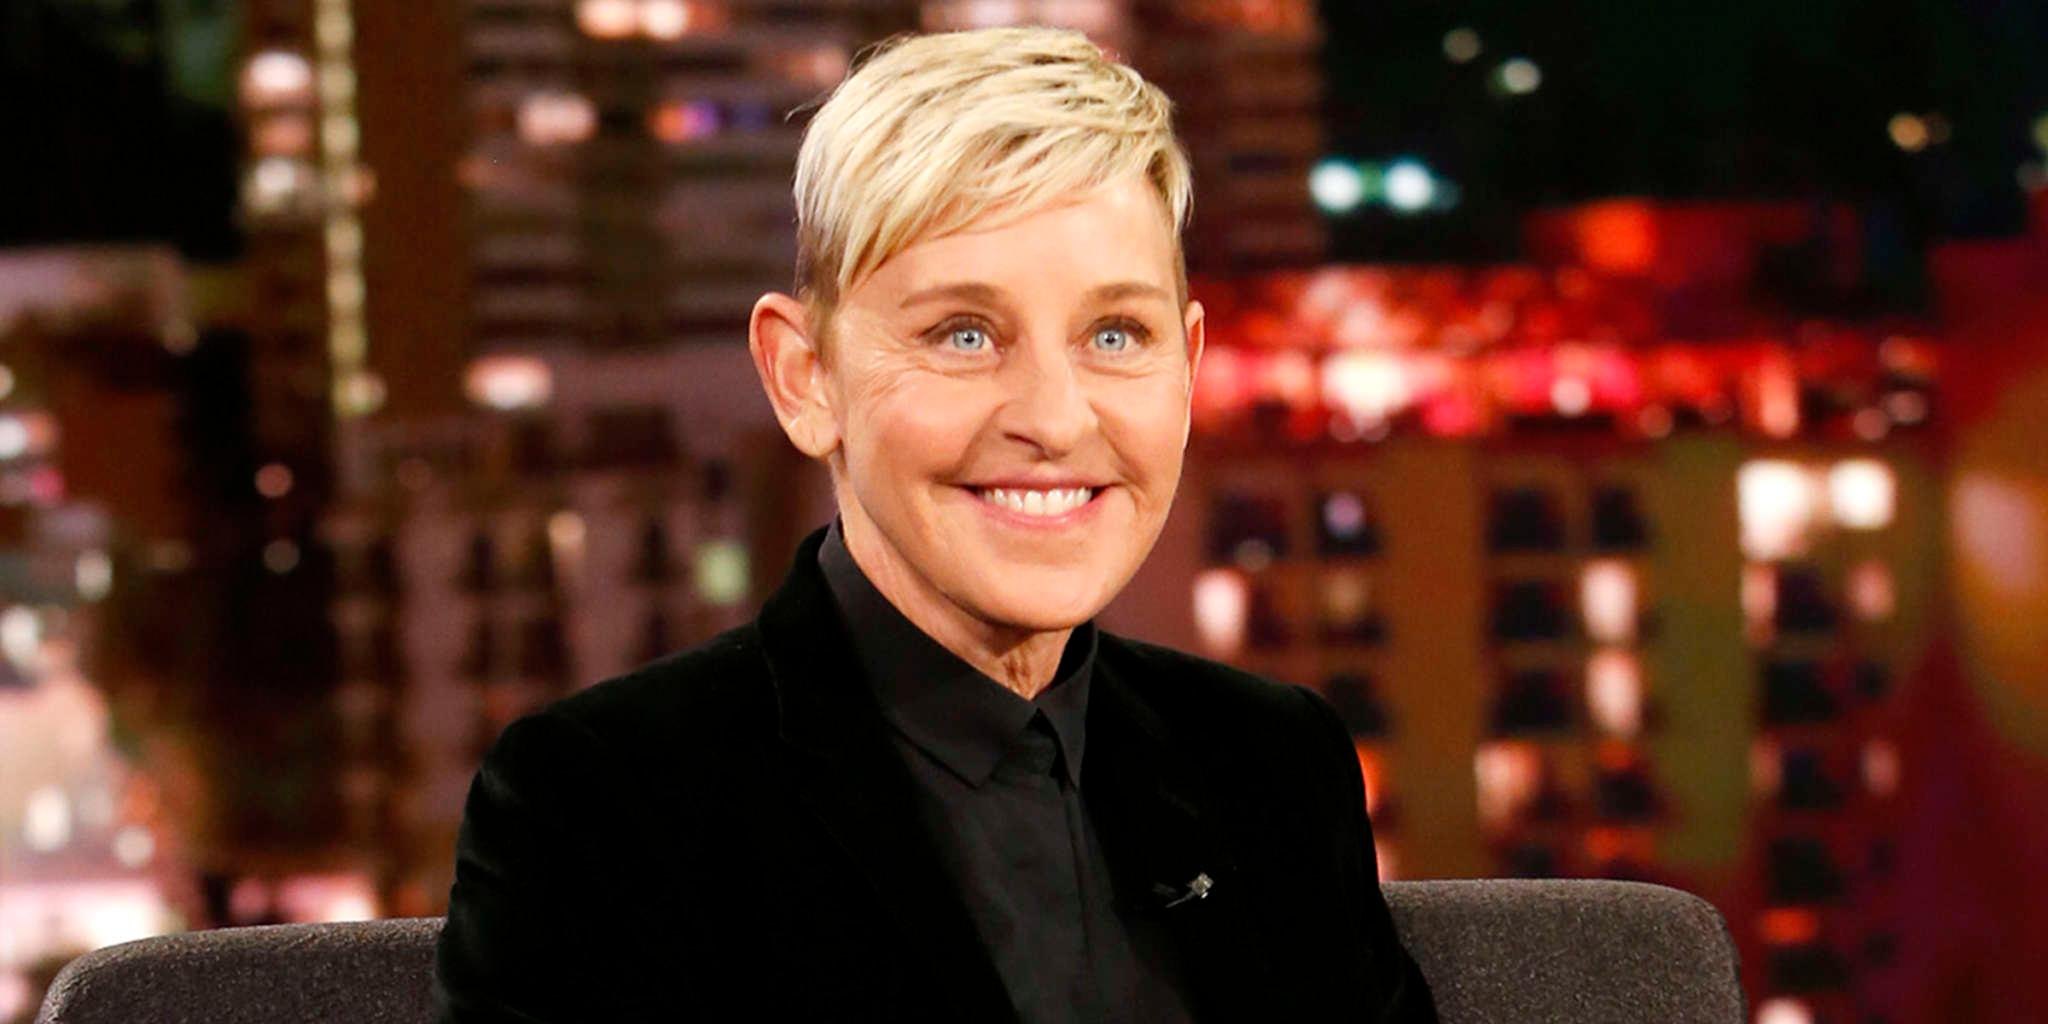 Ellen Degeneres Compares Being Quarantined To Being In Jail -- It Does Not Go Over Well